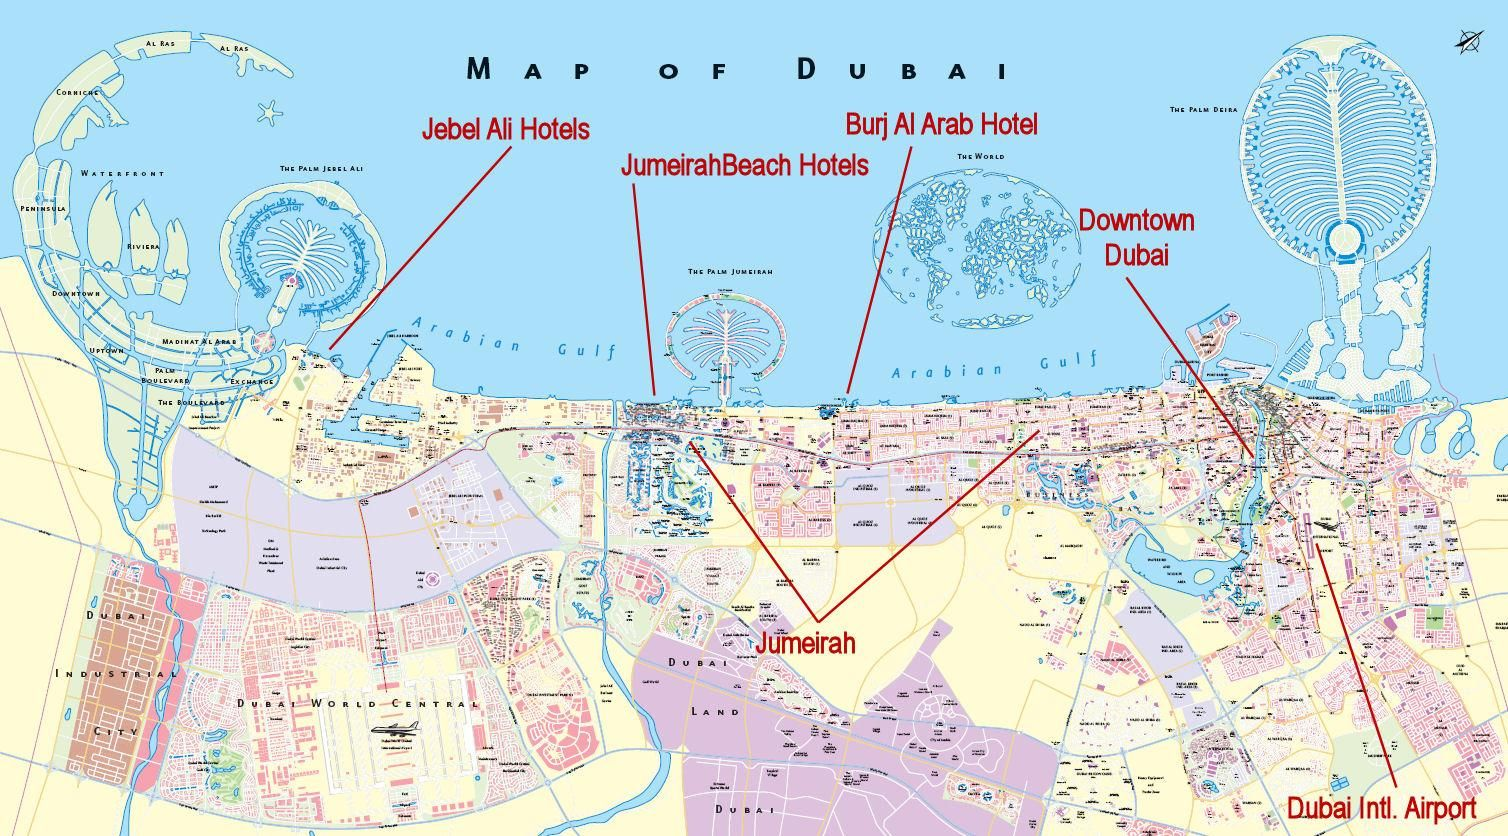 Complete Dubai City Map plus Travel Information Guide for Travelers